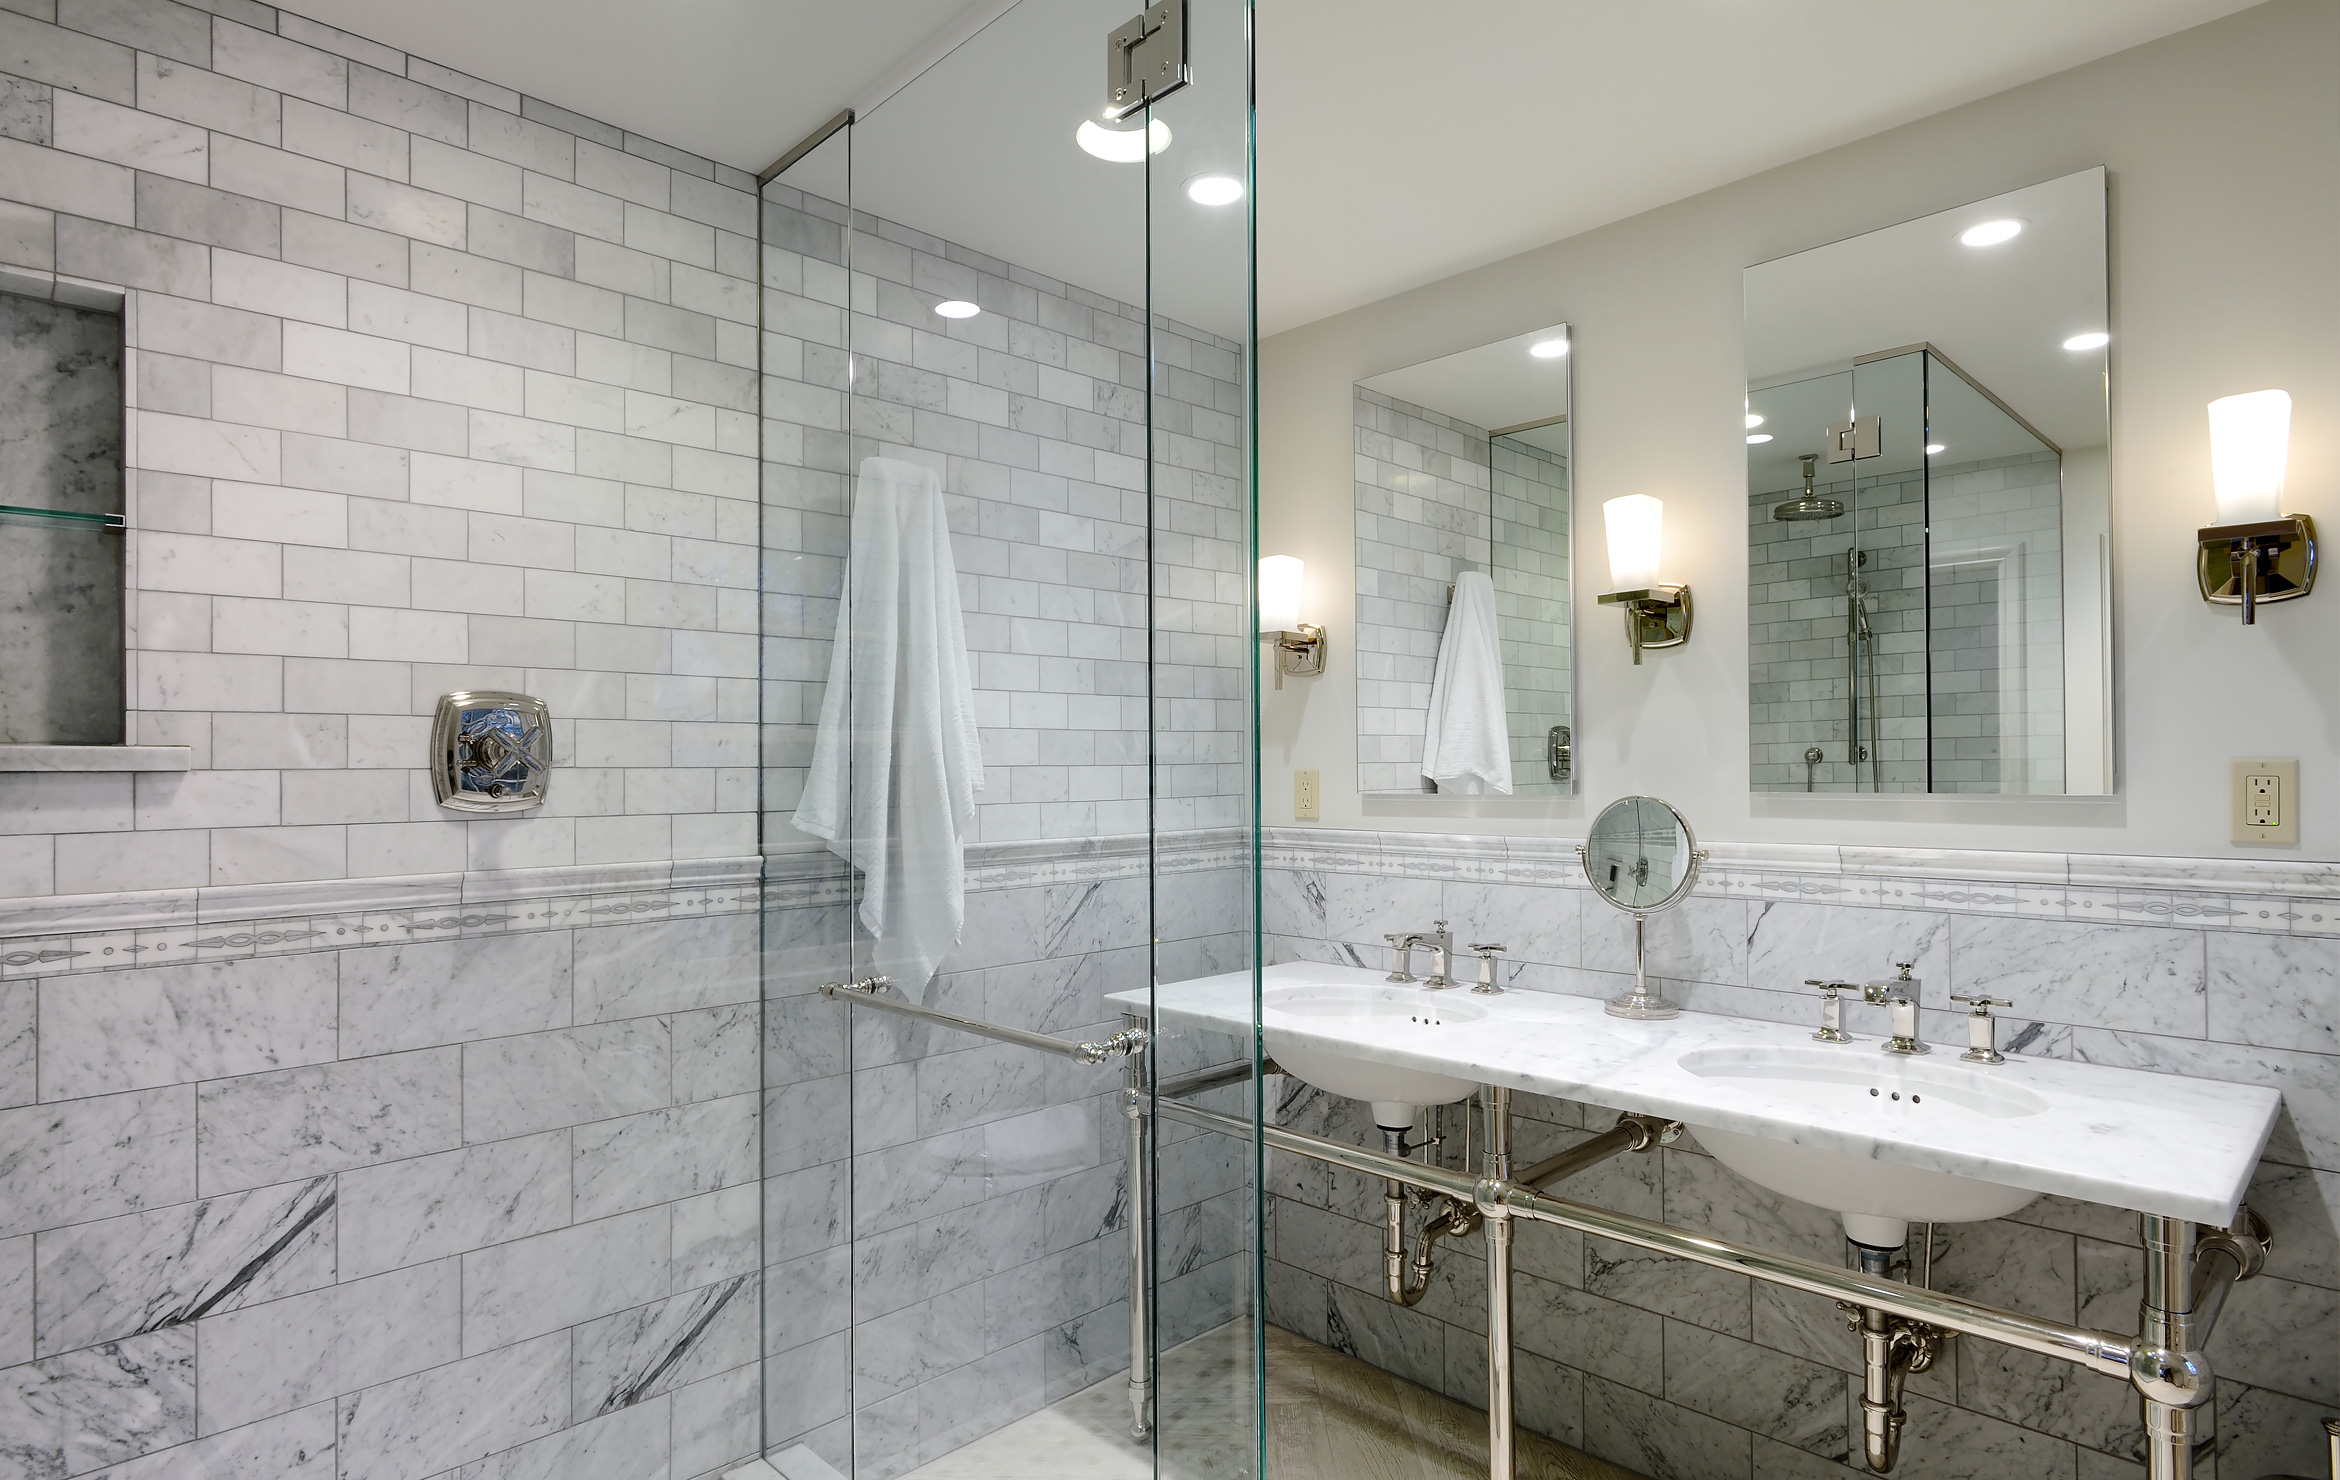 remodel works bath & kitchen replacement cabinet doors glass front prepare before you go for bathroom remodels